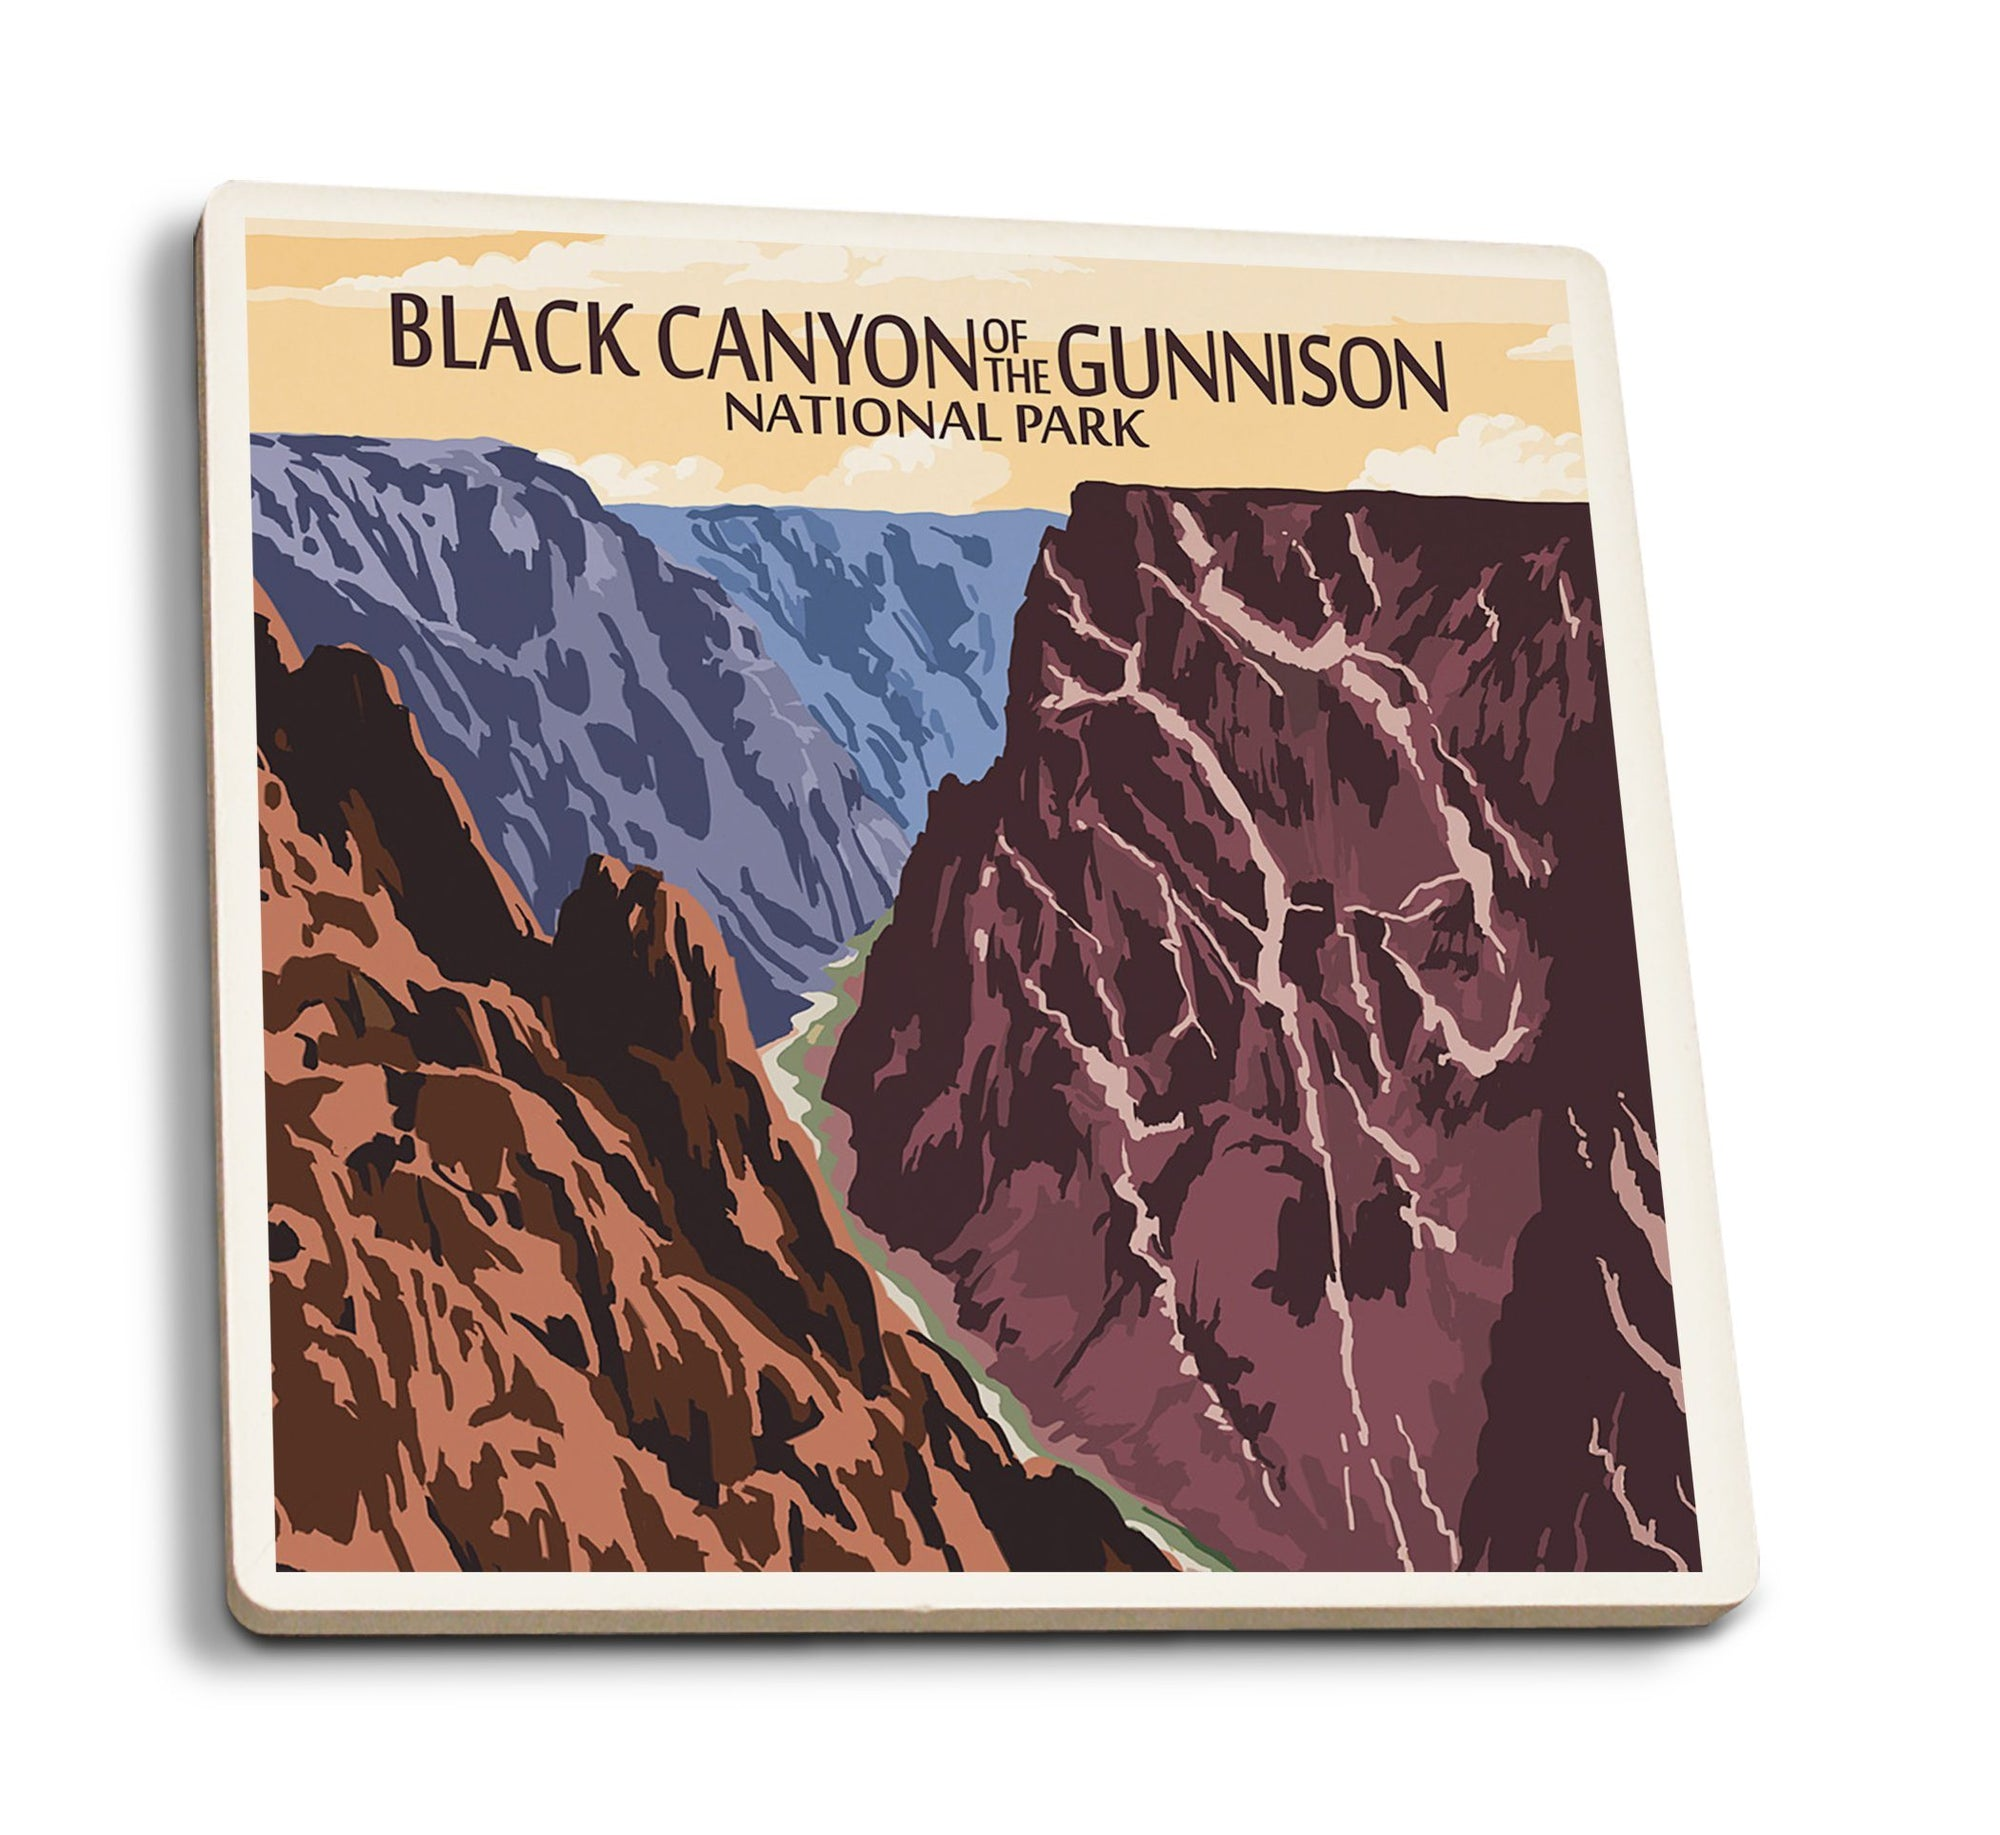 Coaster (Black Canyon of the Gunnison National Park, Colorado - River & Cliffs - Lantern Press Artwork) Coaster Nightingale Boutique Coaster Pack